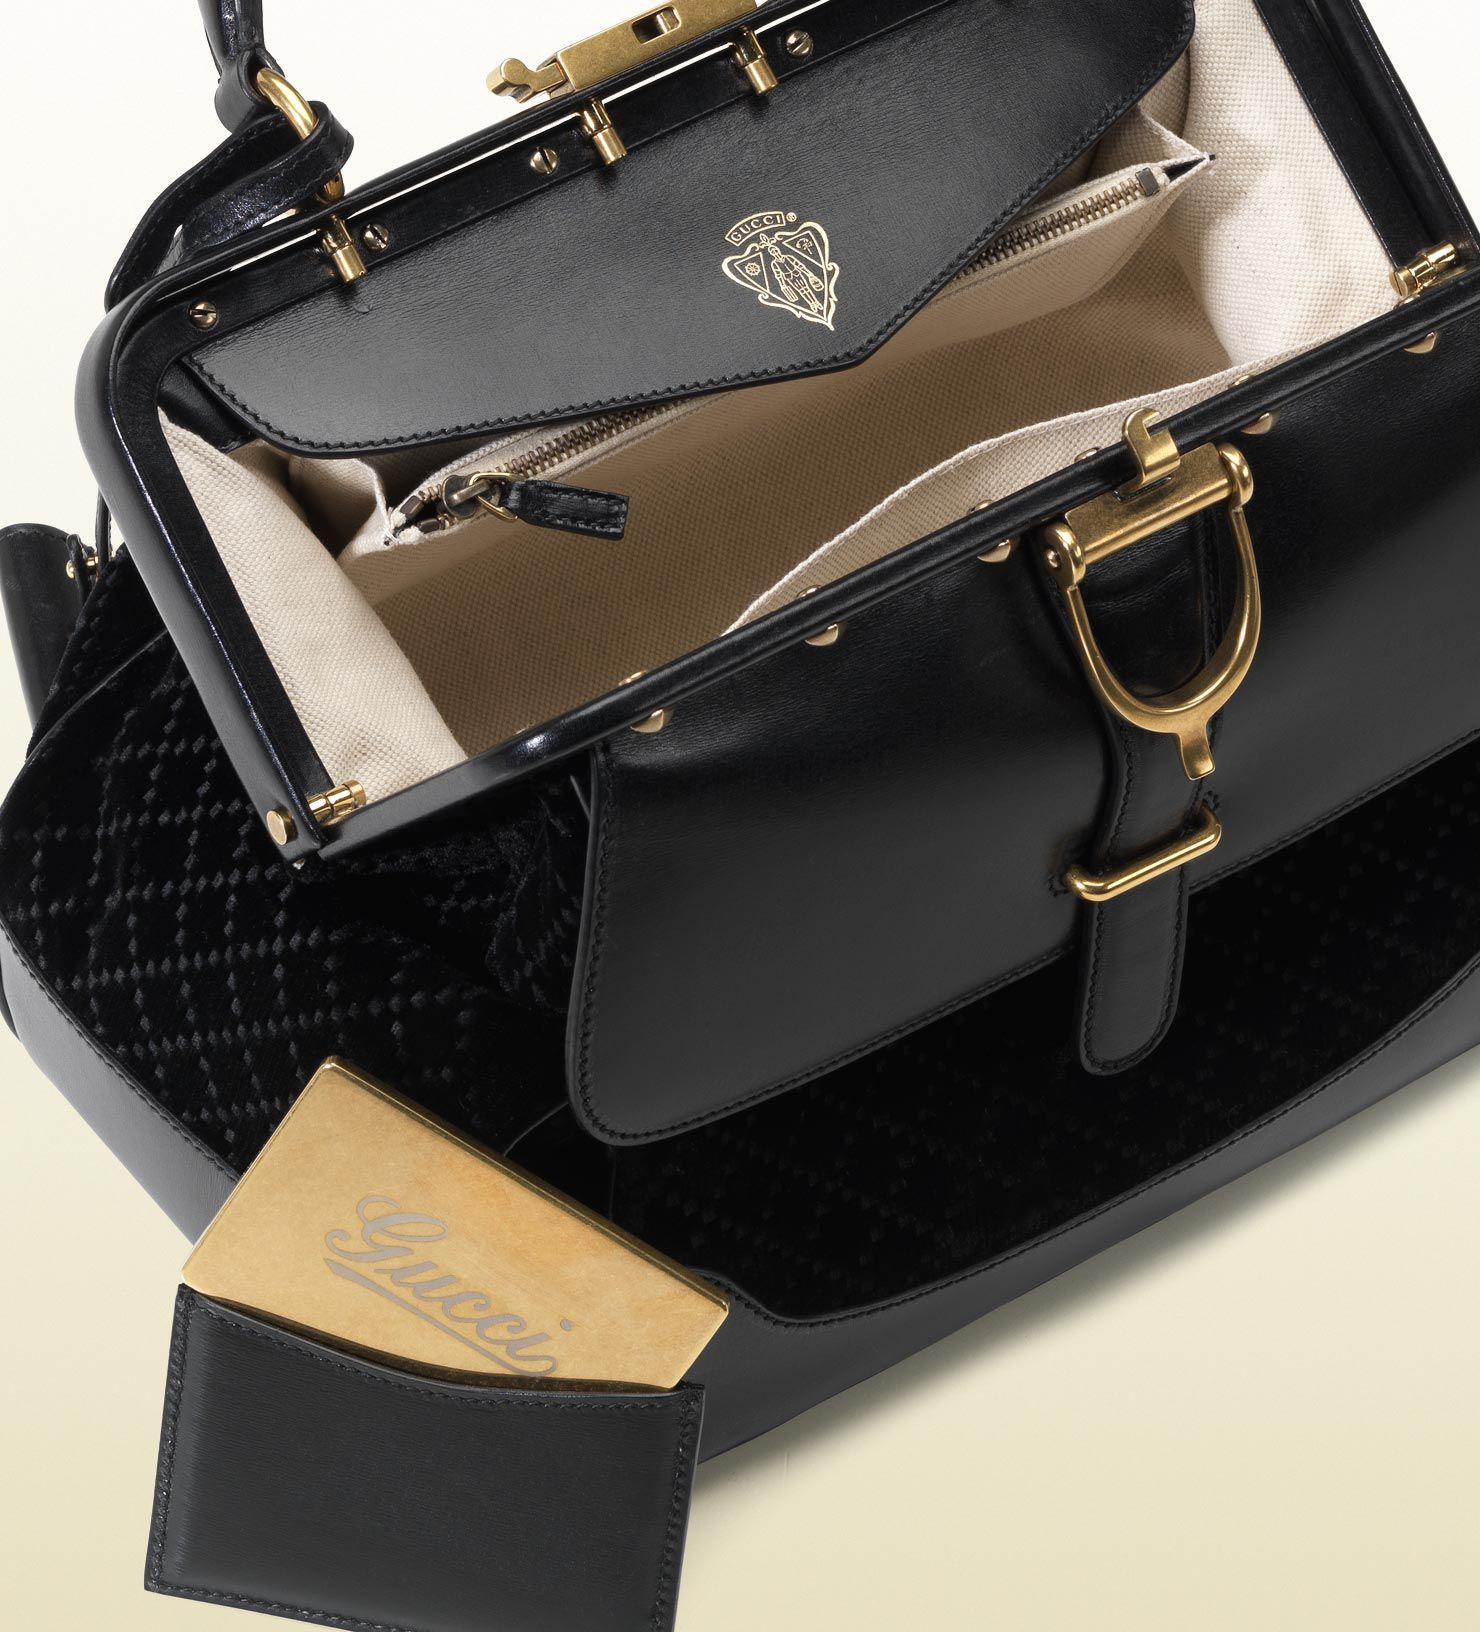 f76900f48d75 Gucci Women's Fall Winter 2012-2013 Collection: Lady Stirrup Top Handle Black  Diamante Velvet Bag